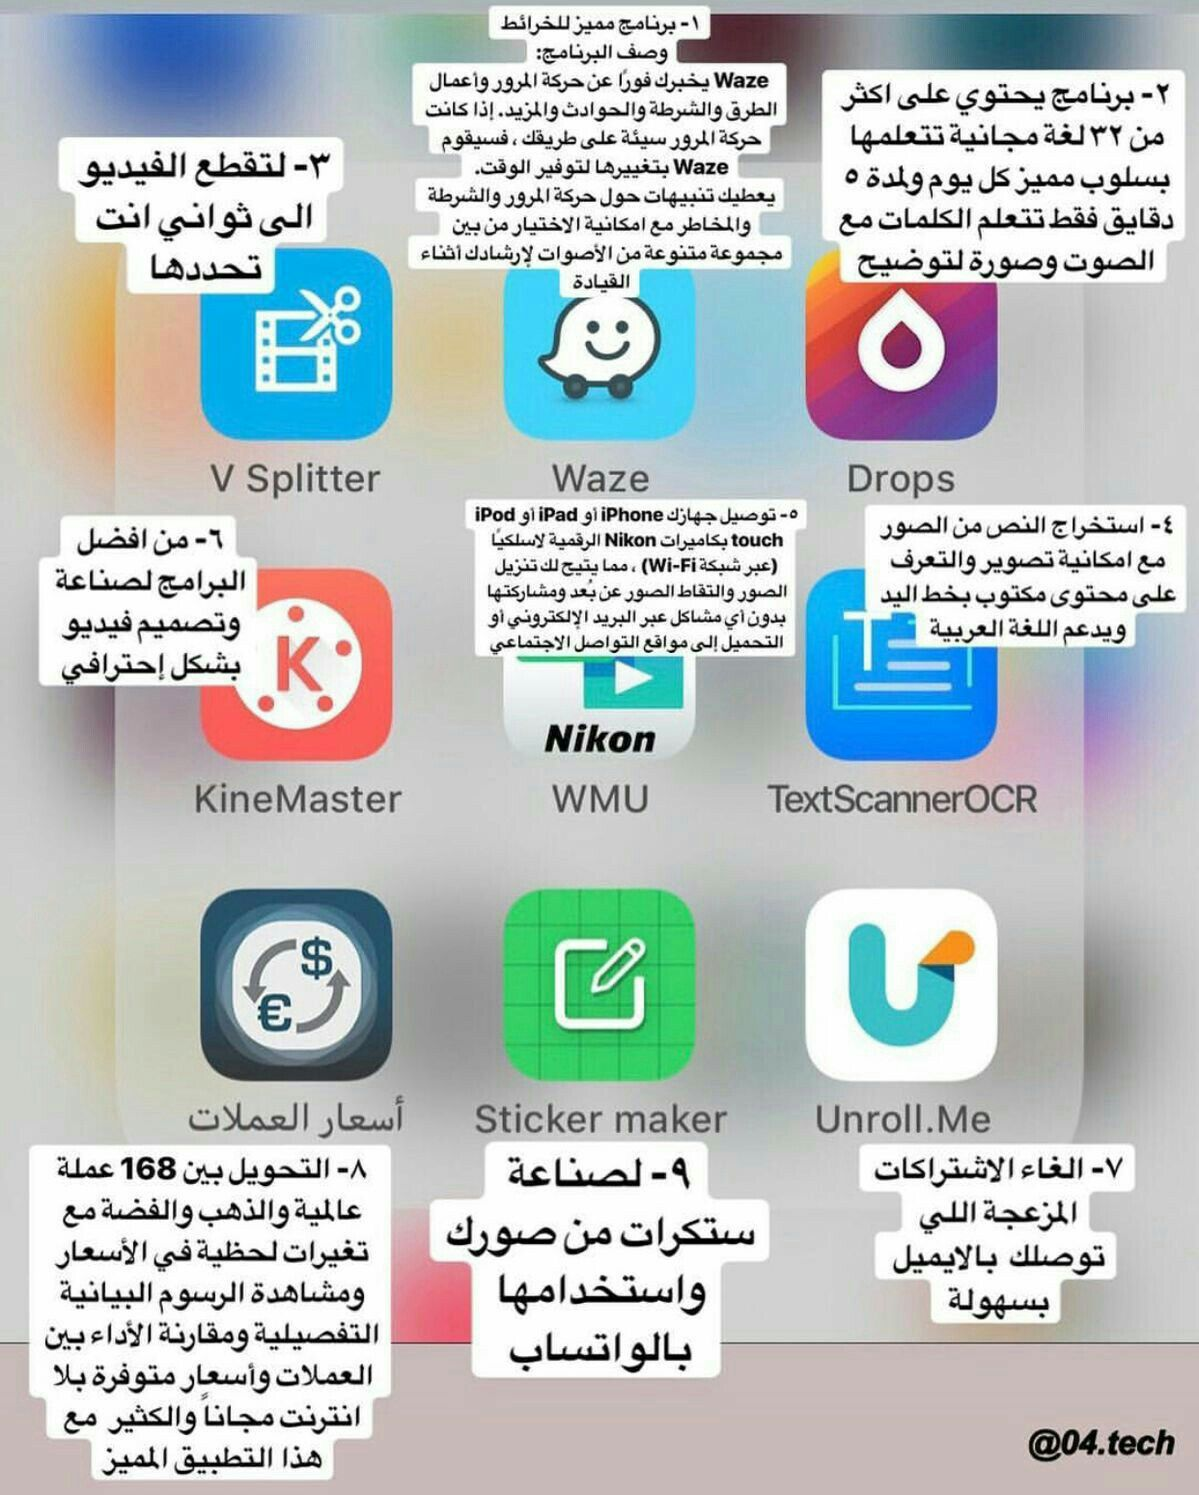 Pin By حفصاء العبادي On برامج Iphone Photo Editor App Application Iphone Iphone App Layout